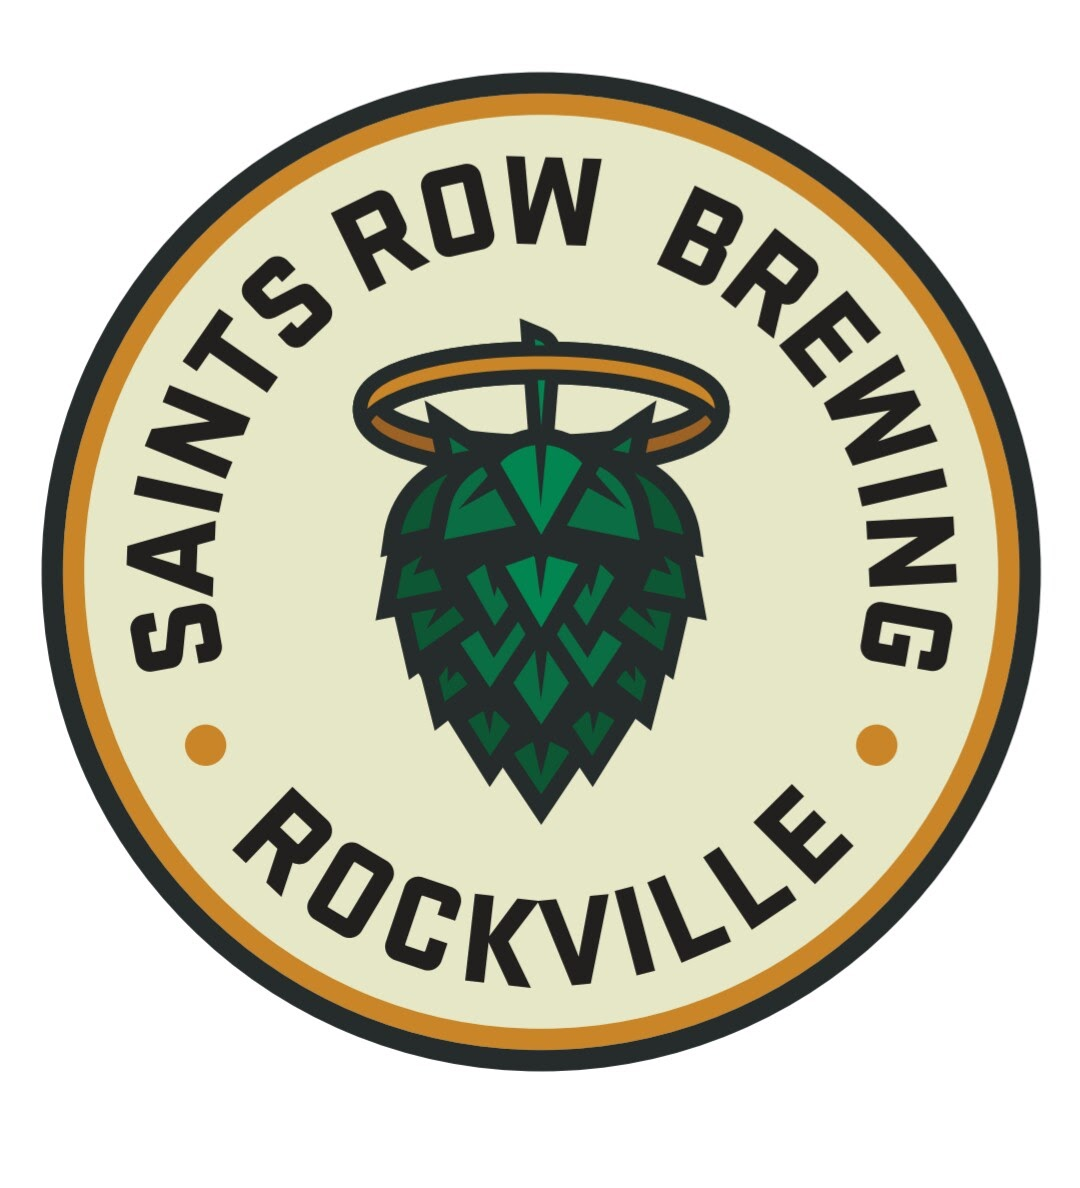 Saints Row Brewing